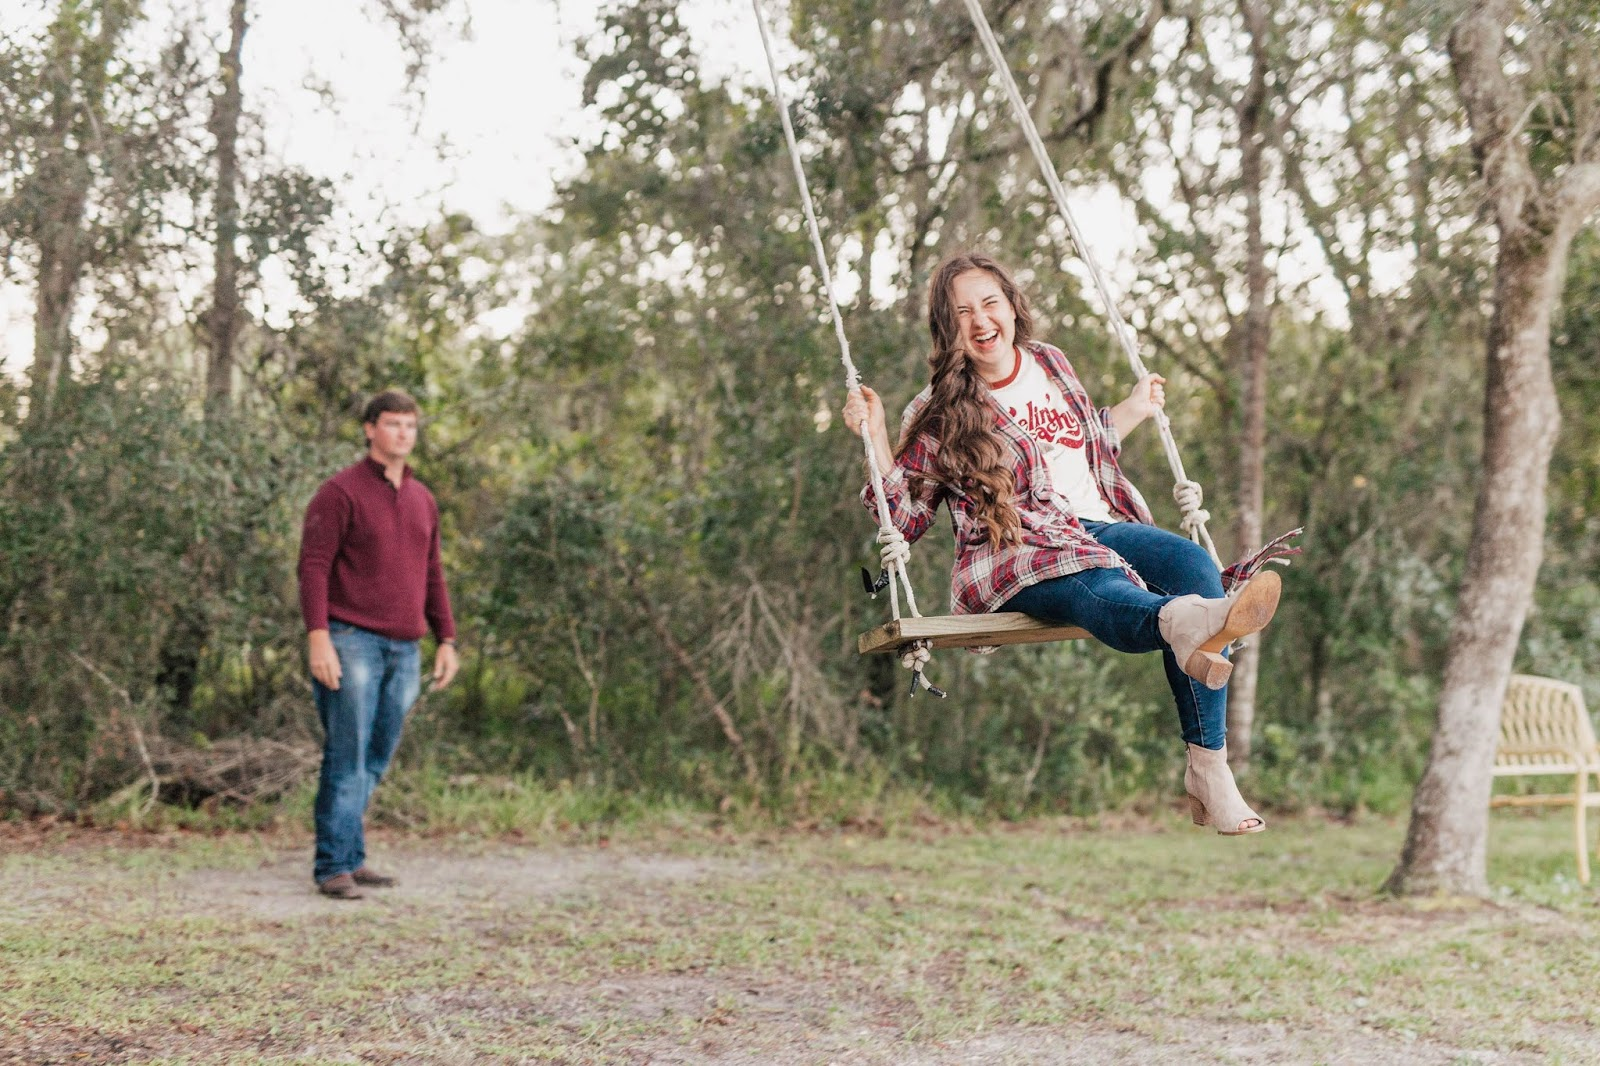 Brunette boy pushing brunette girl on a swing in the North Florida woods